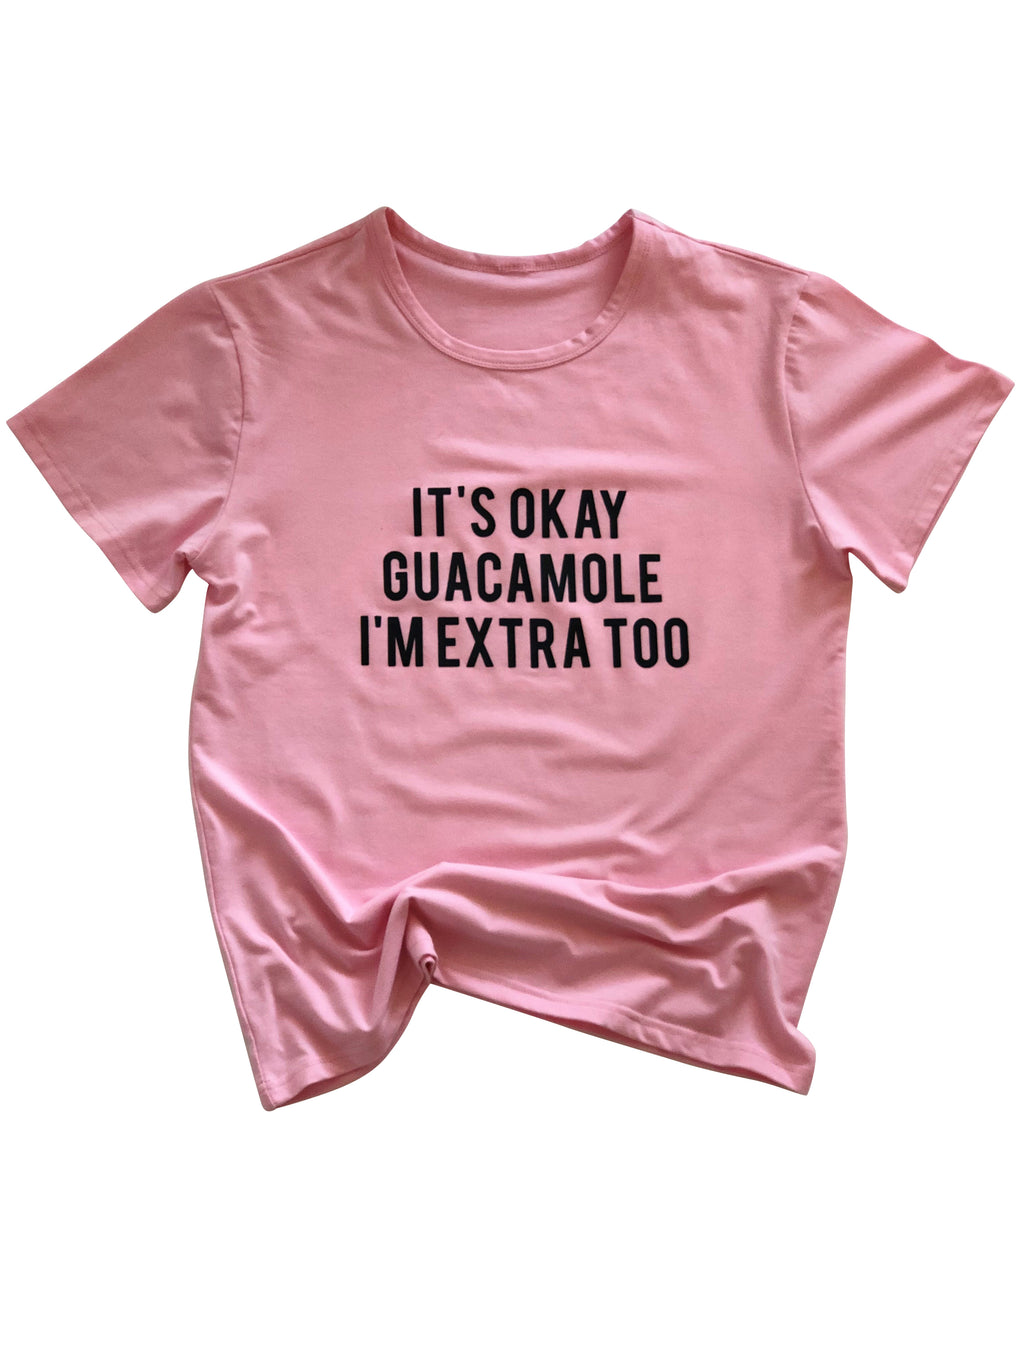 Extra Guac Tee in Pink